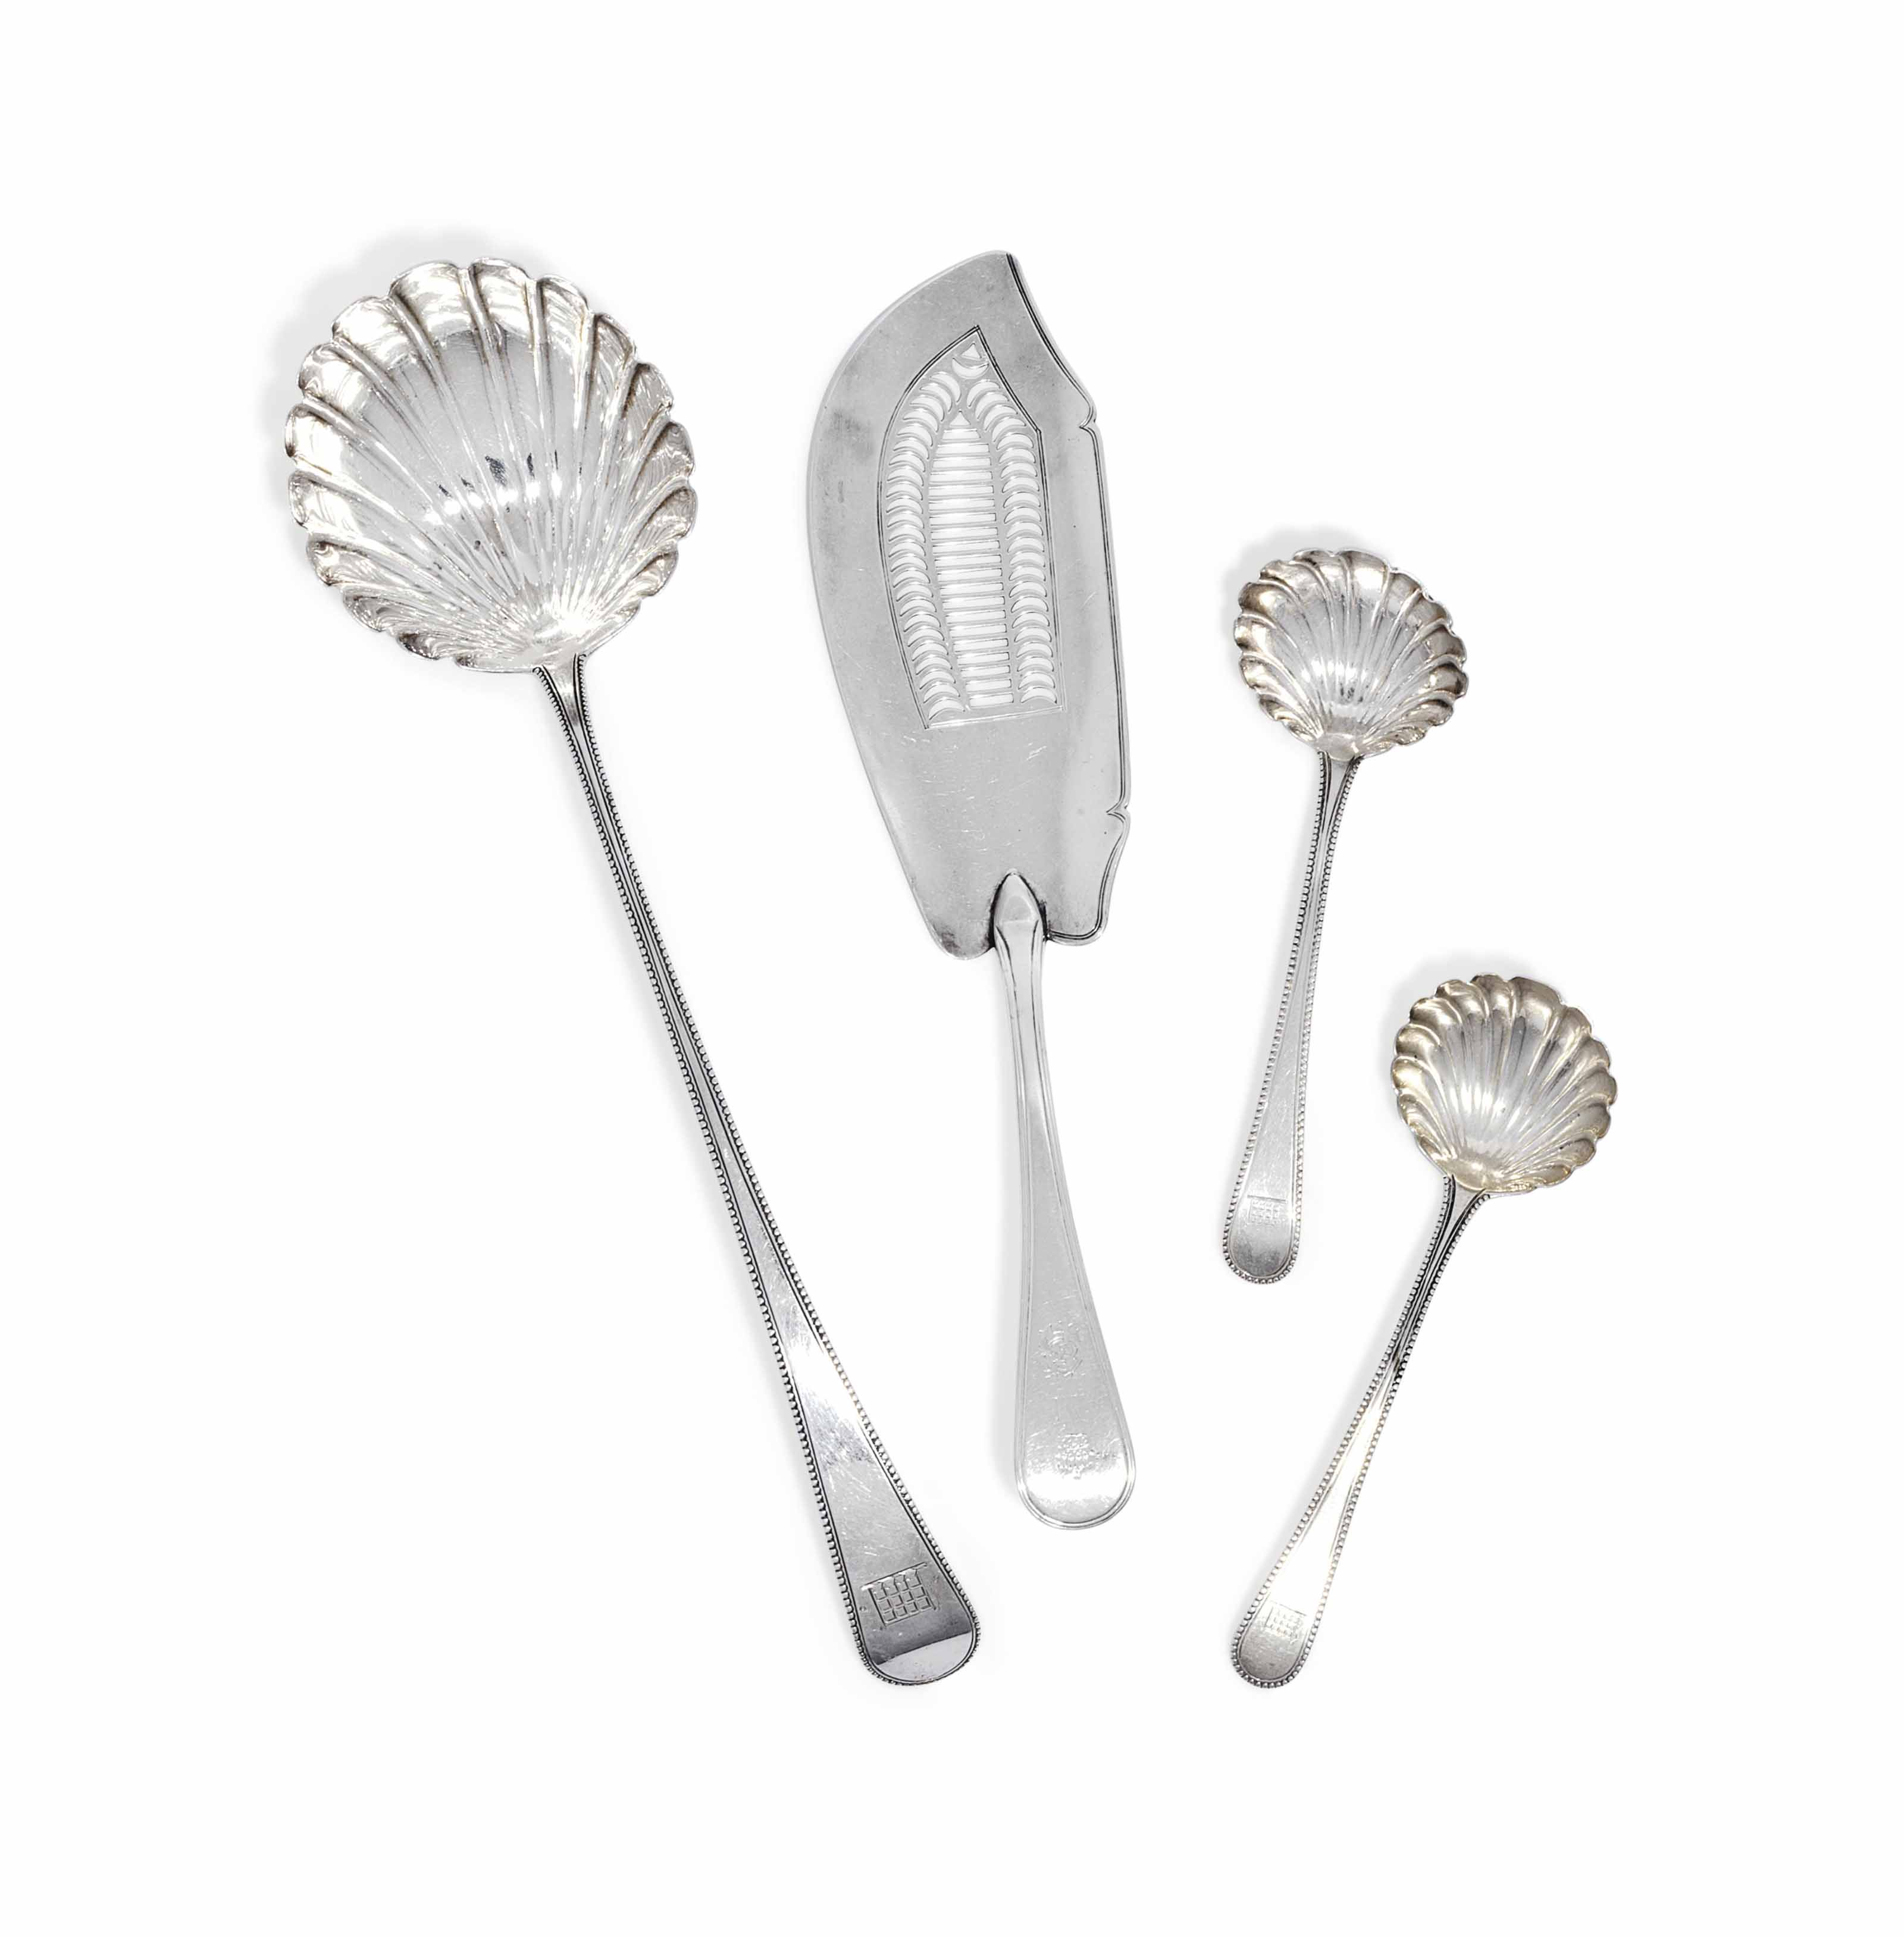 A GEORGE III SILVER BEAD-EDGE SOUP LADLE AND A PAIR OF SAUCE LADLES EN SUITE